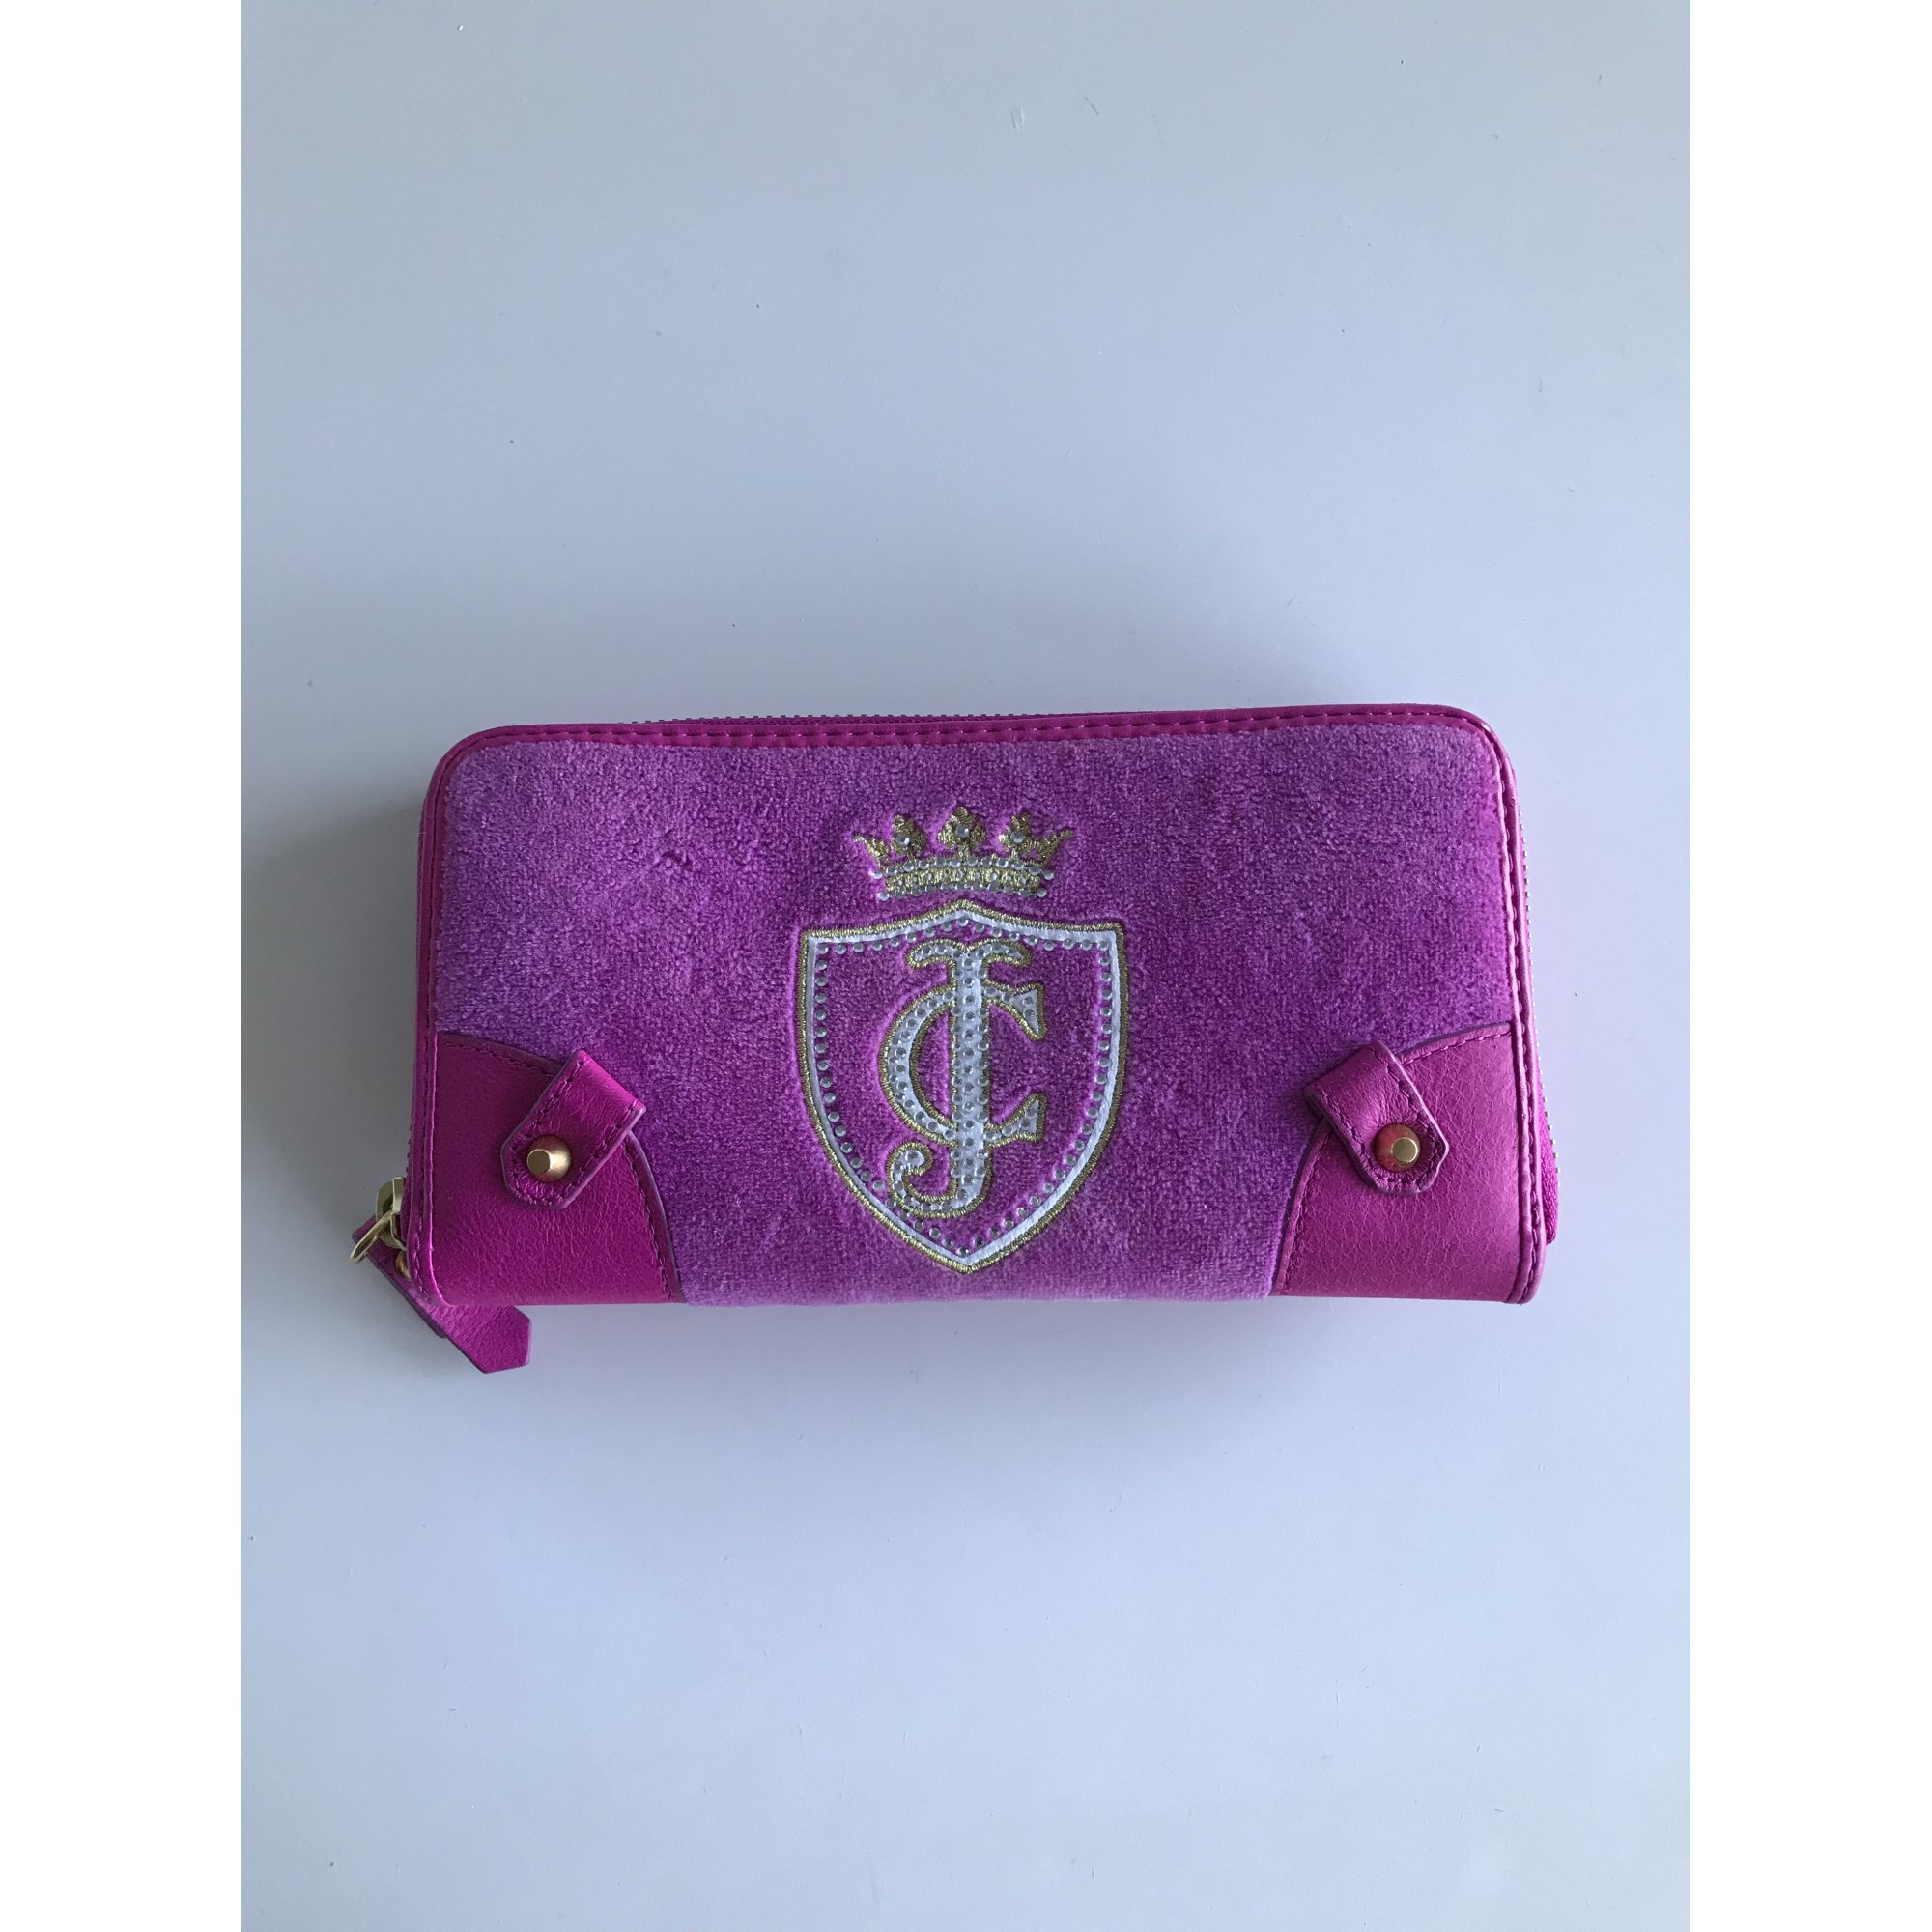 Portefeuille JUICY COUTURE synthétique rose